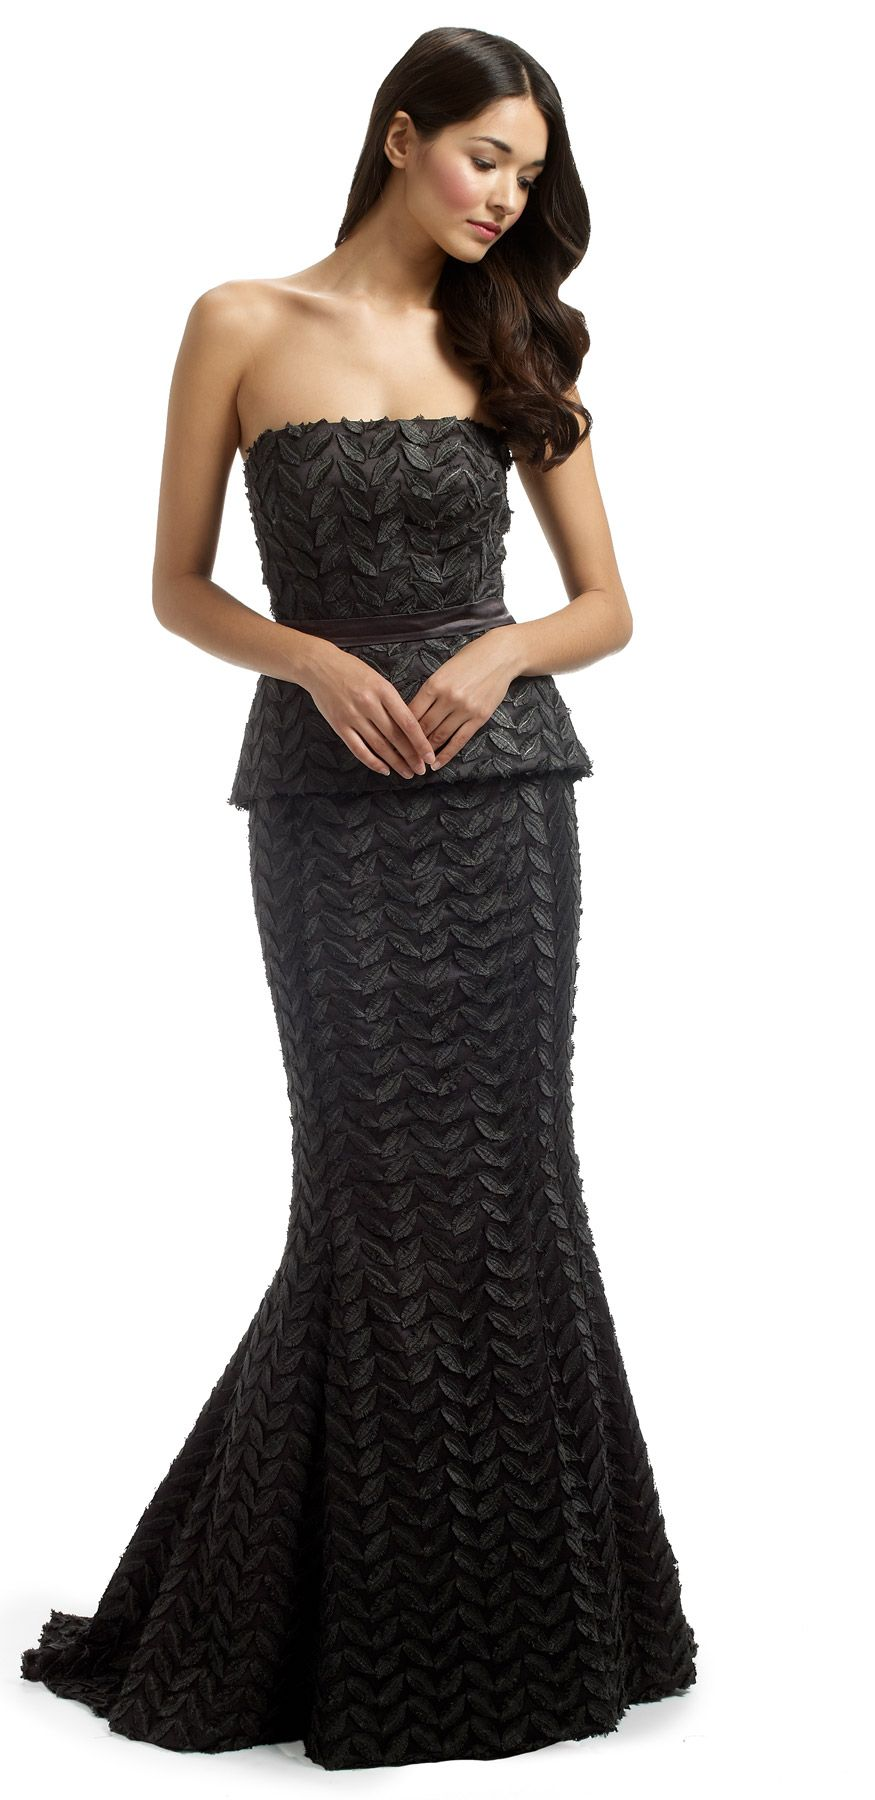 Ariella Stella Leaf Design Evening Dress - Black on black leaf embellishments cover this glamorous peplum fishtail dress. The strapless boned design moulds to the body creating a feminine silhouette, with a clinching satin waistband